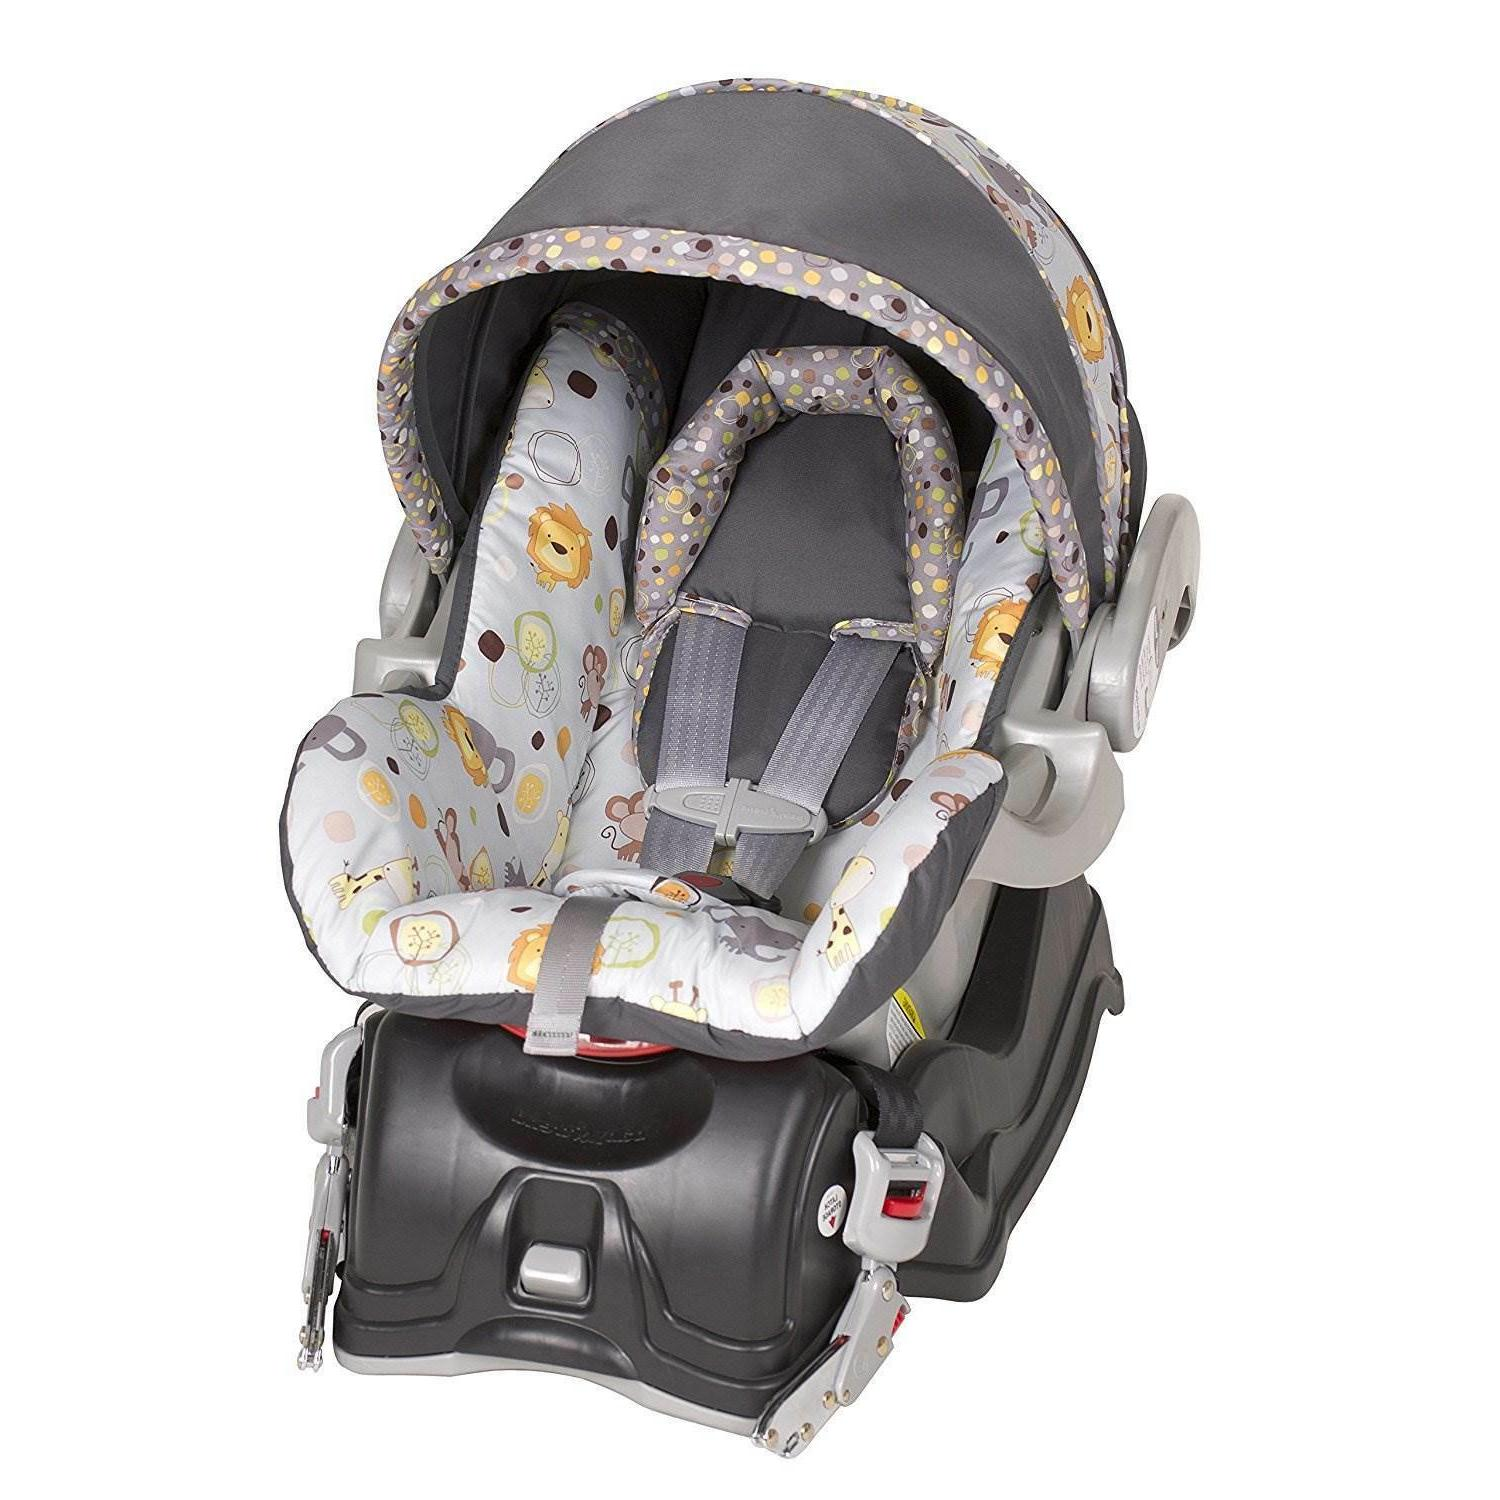 Baby & Seat System Safety